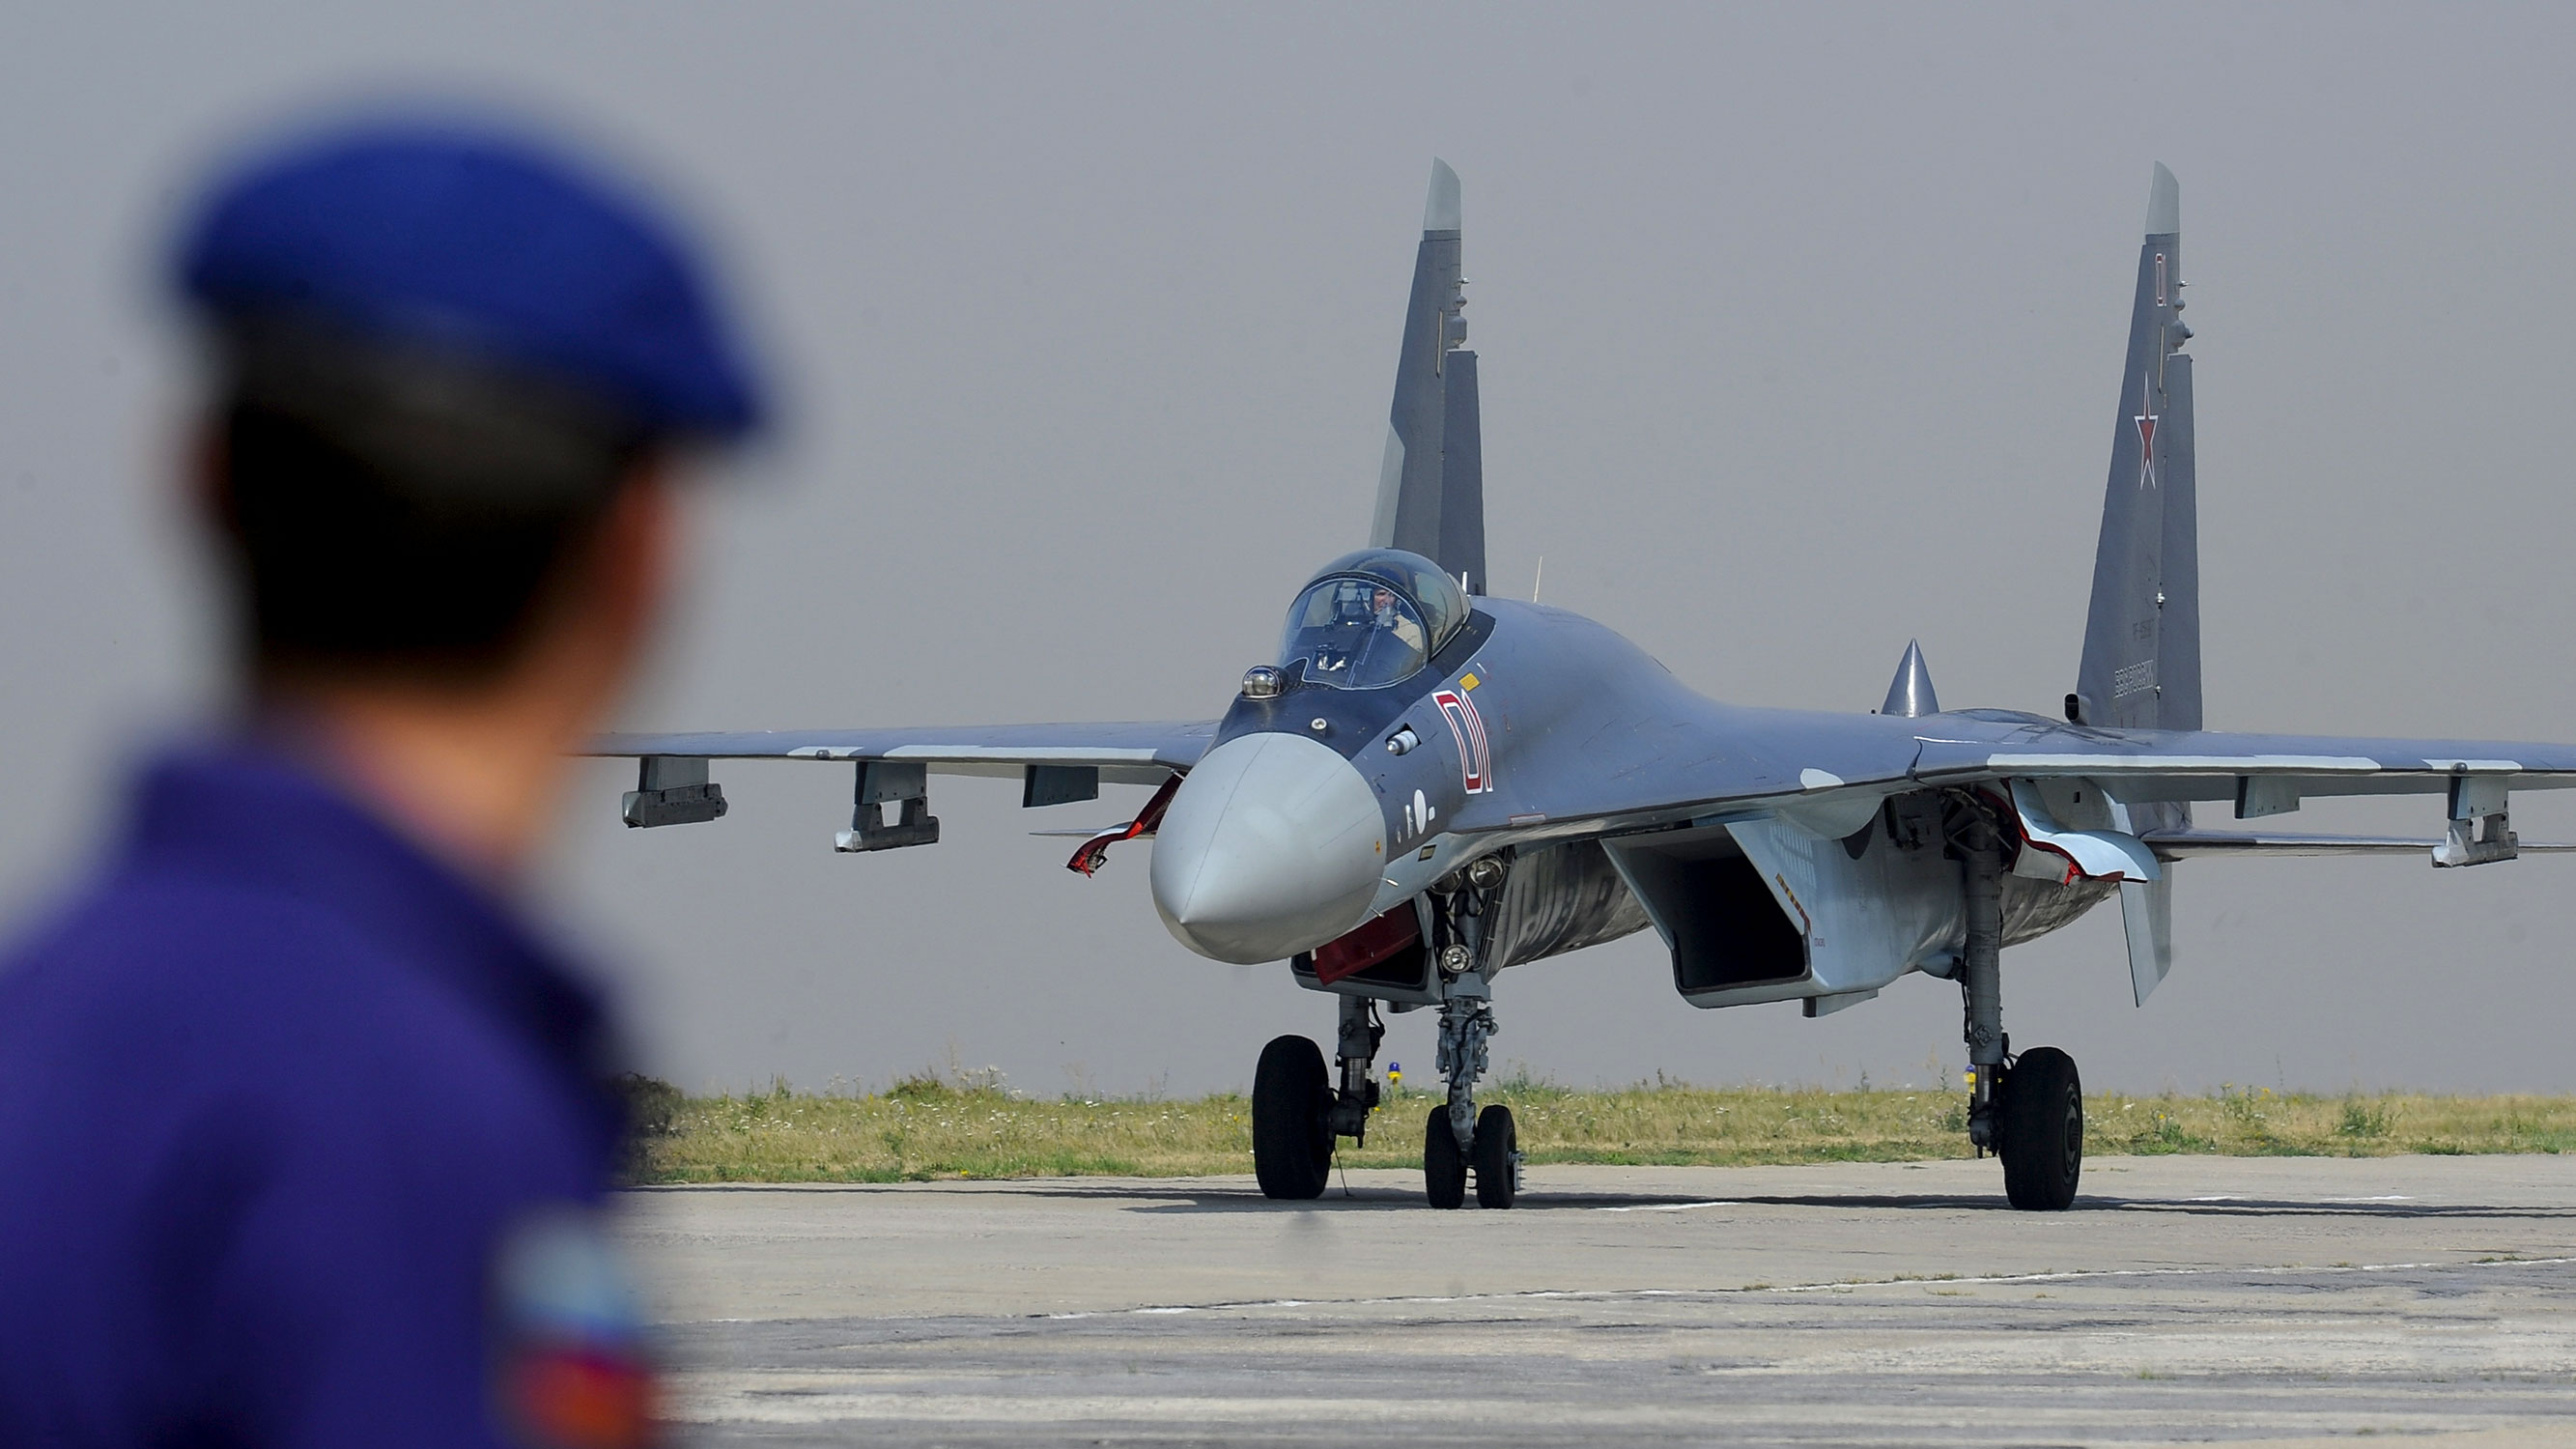 Russian Sukhoi Su-35 multi-role fighter aircraft